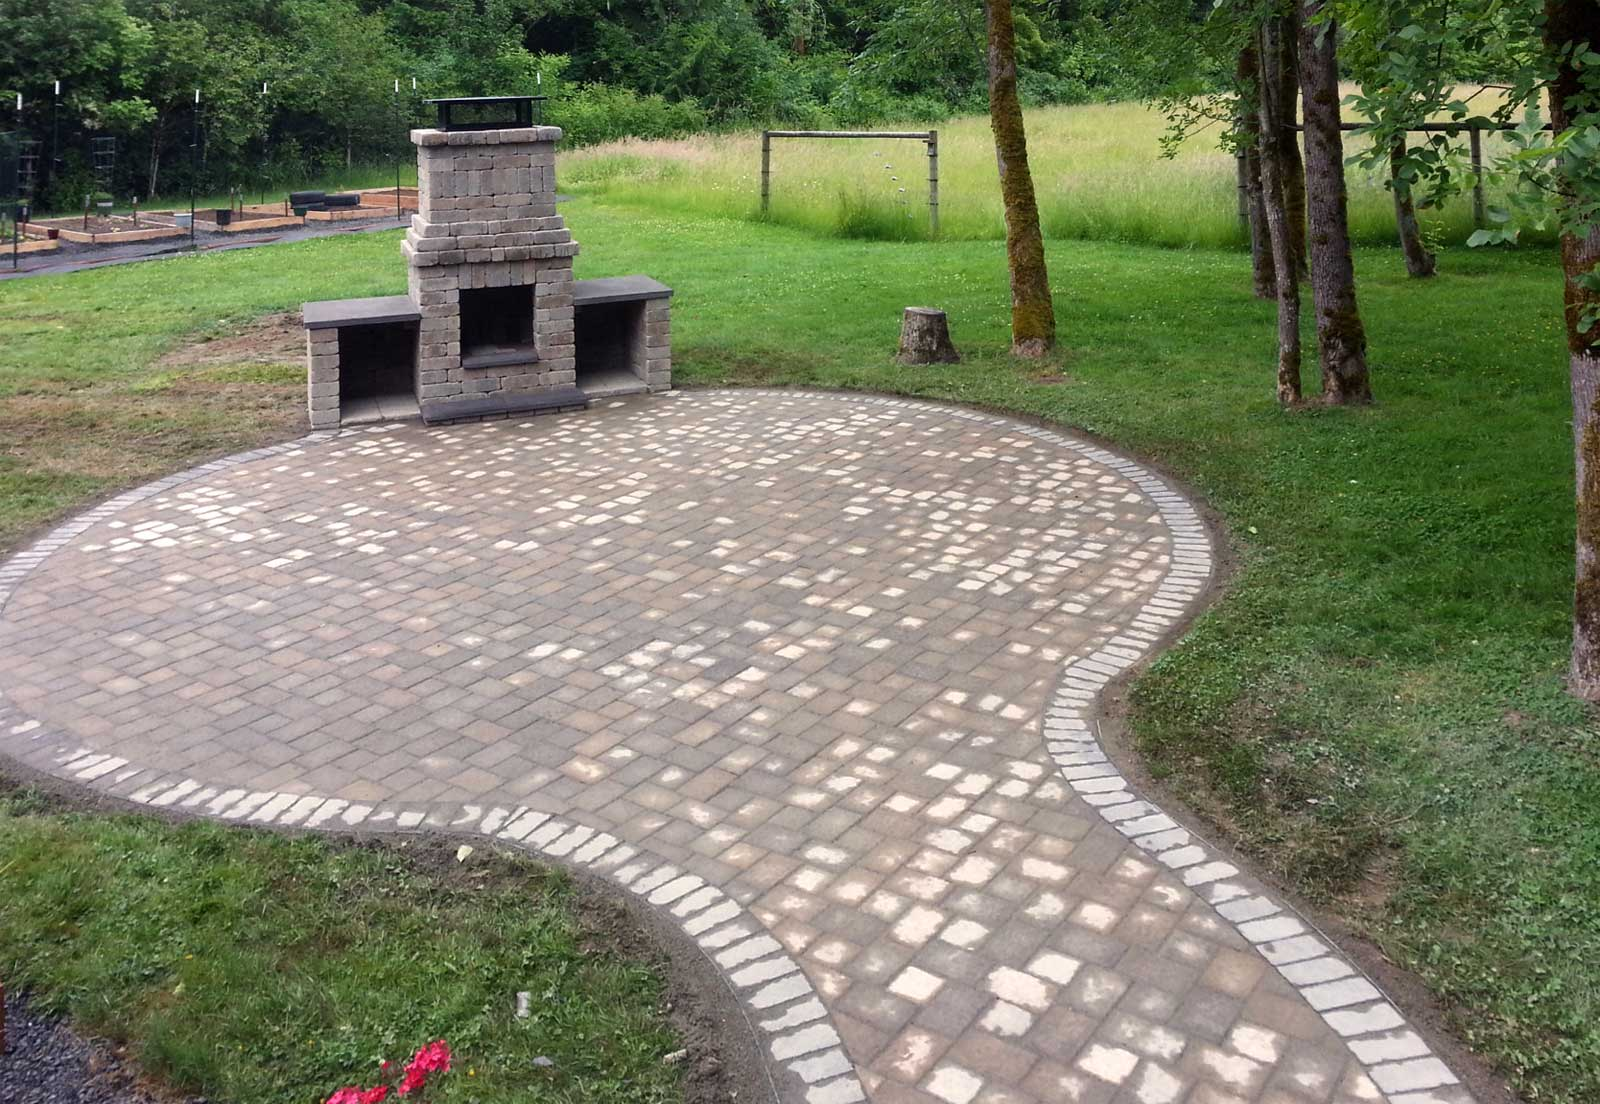 Chehalis Outdoor Fire Pit, Matching Paver Patio - AJB ... on Paver Patio Designs With Fire Pit id=37837